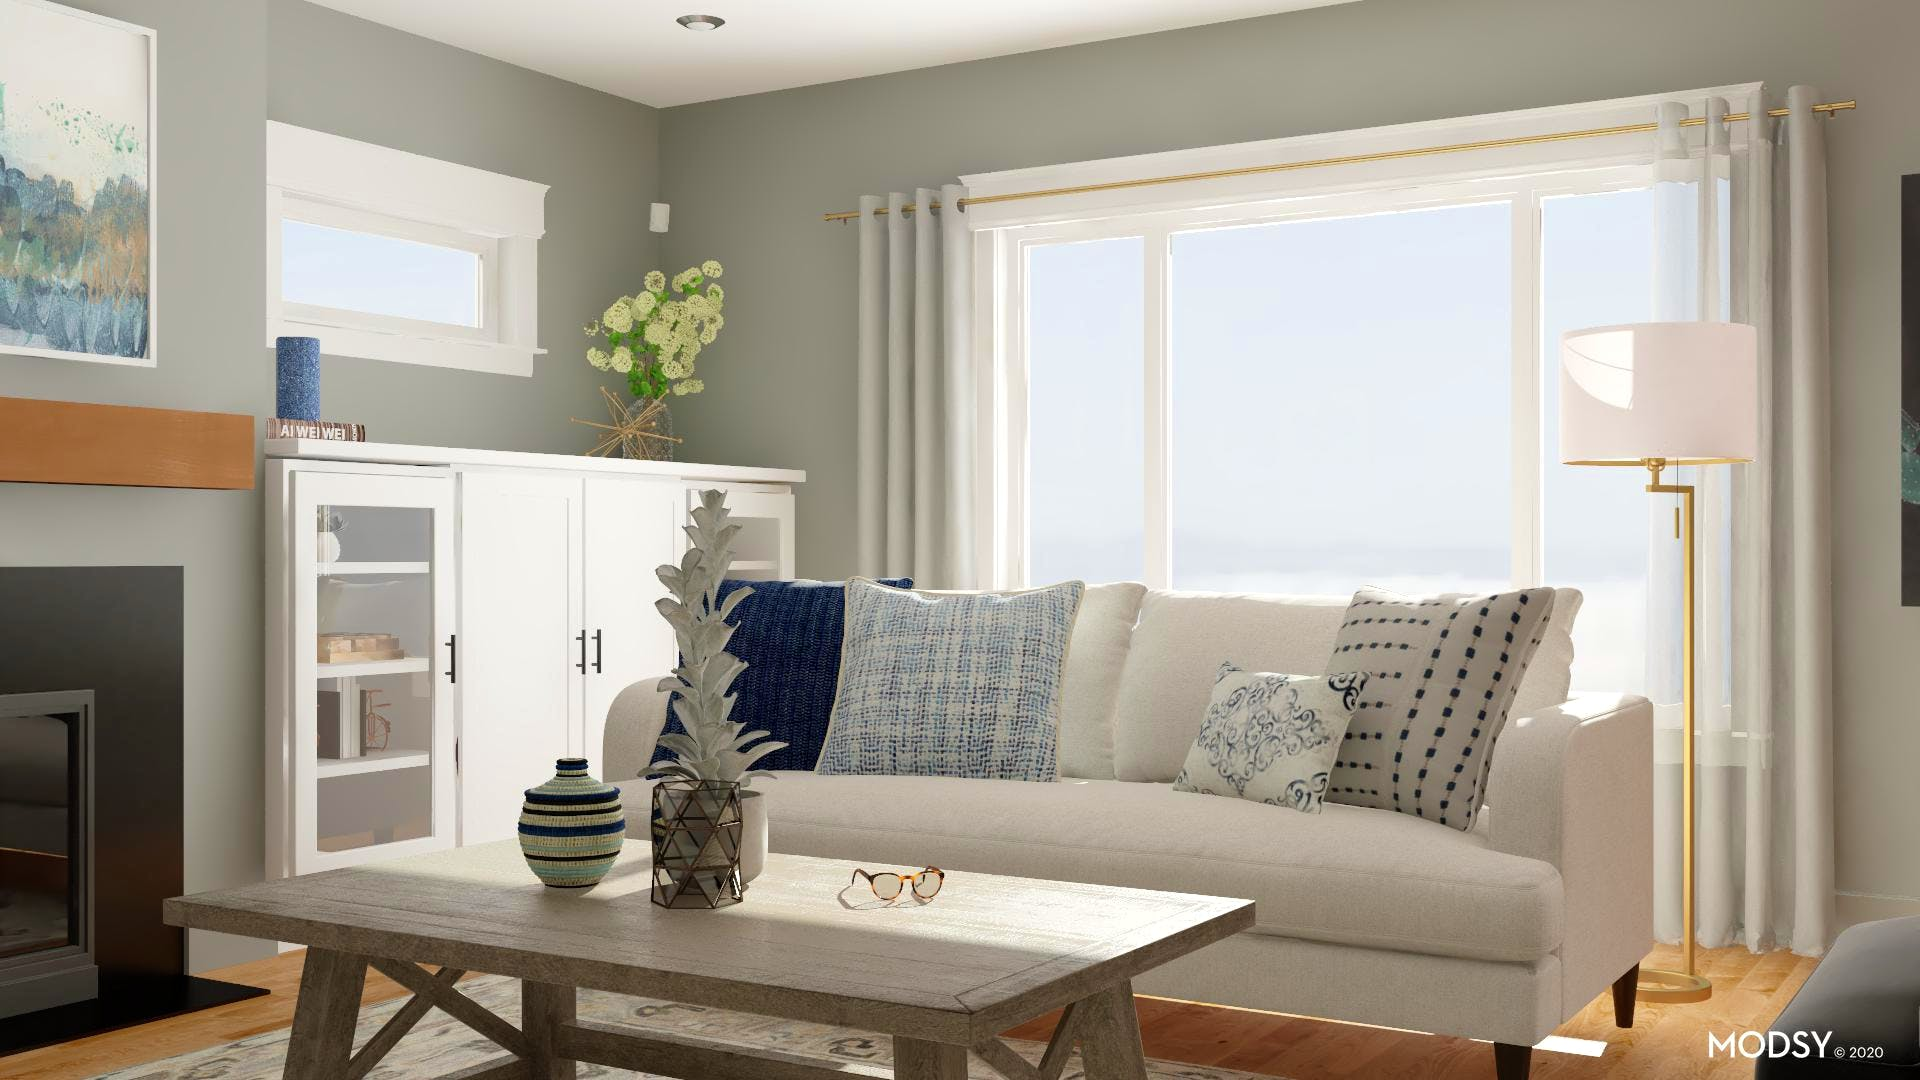 Accessorize: Built-Ins And More